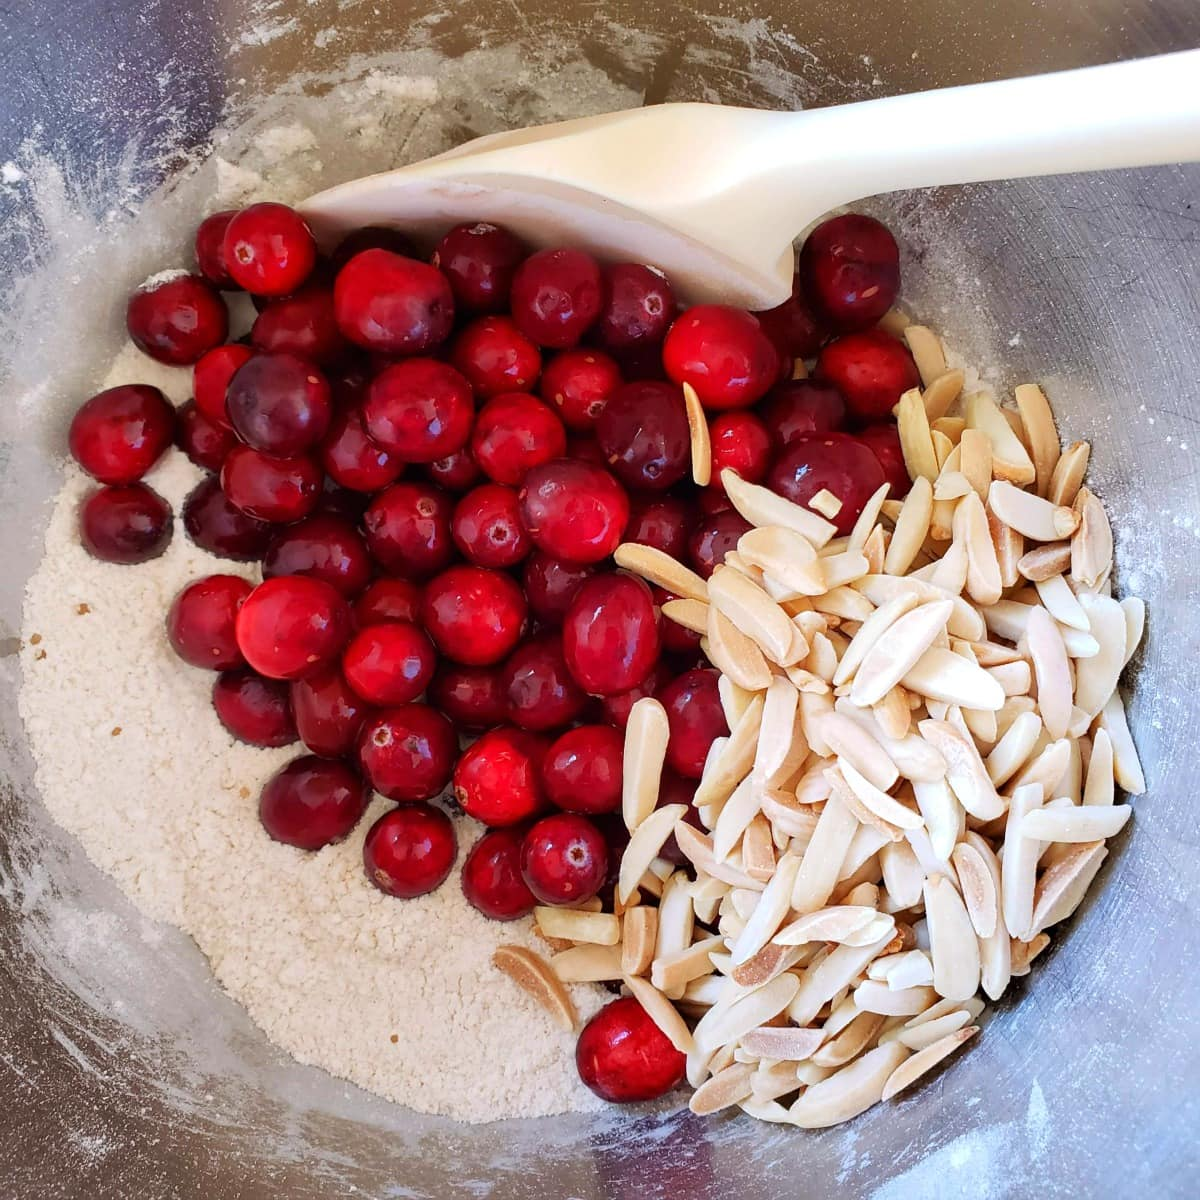 Cranberries and almonds go into the cake